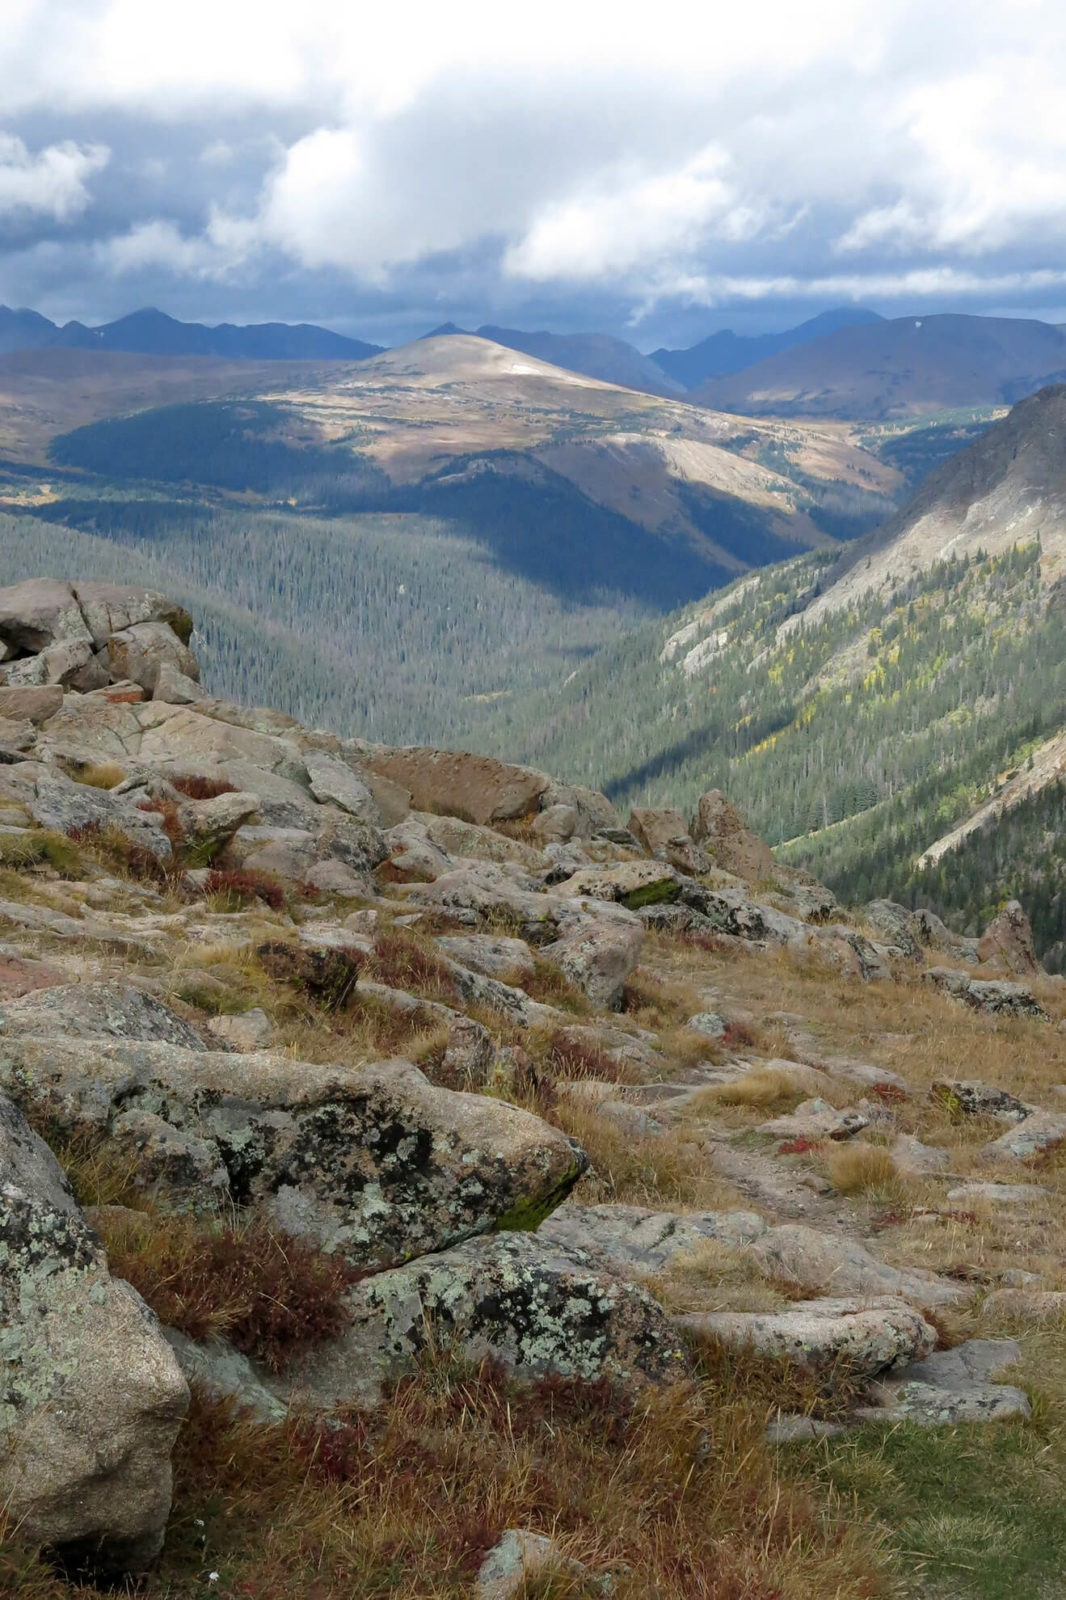 Robin Botie of Ithaca, New York, photographs on vacation in the Rocky Mountains